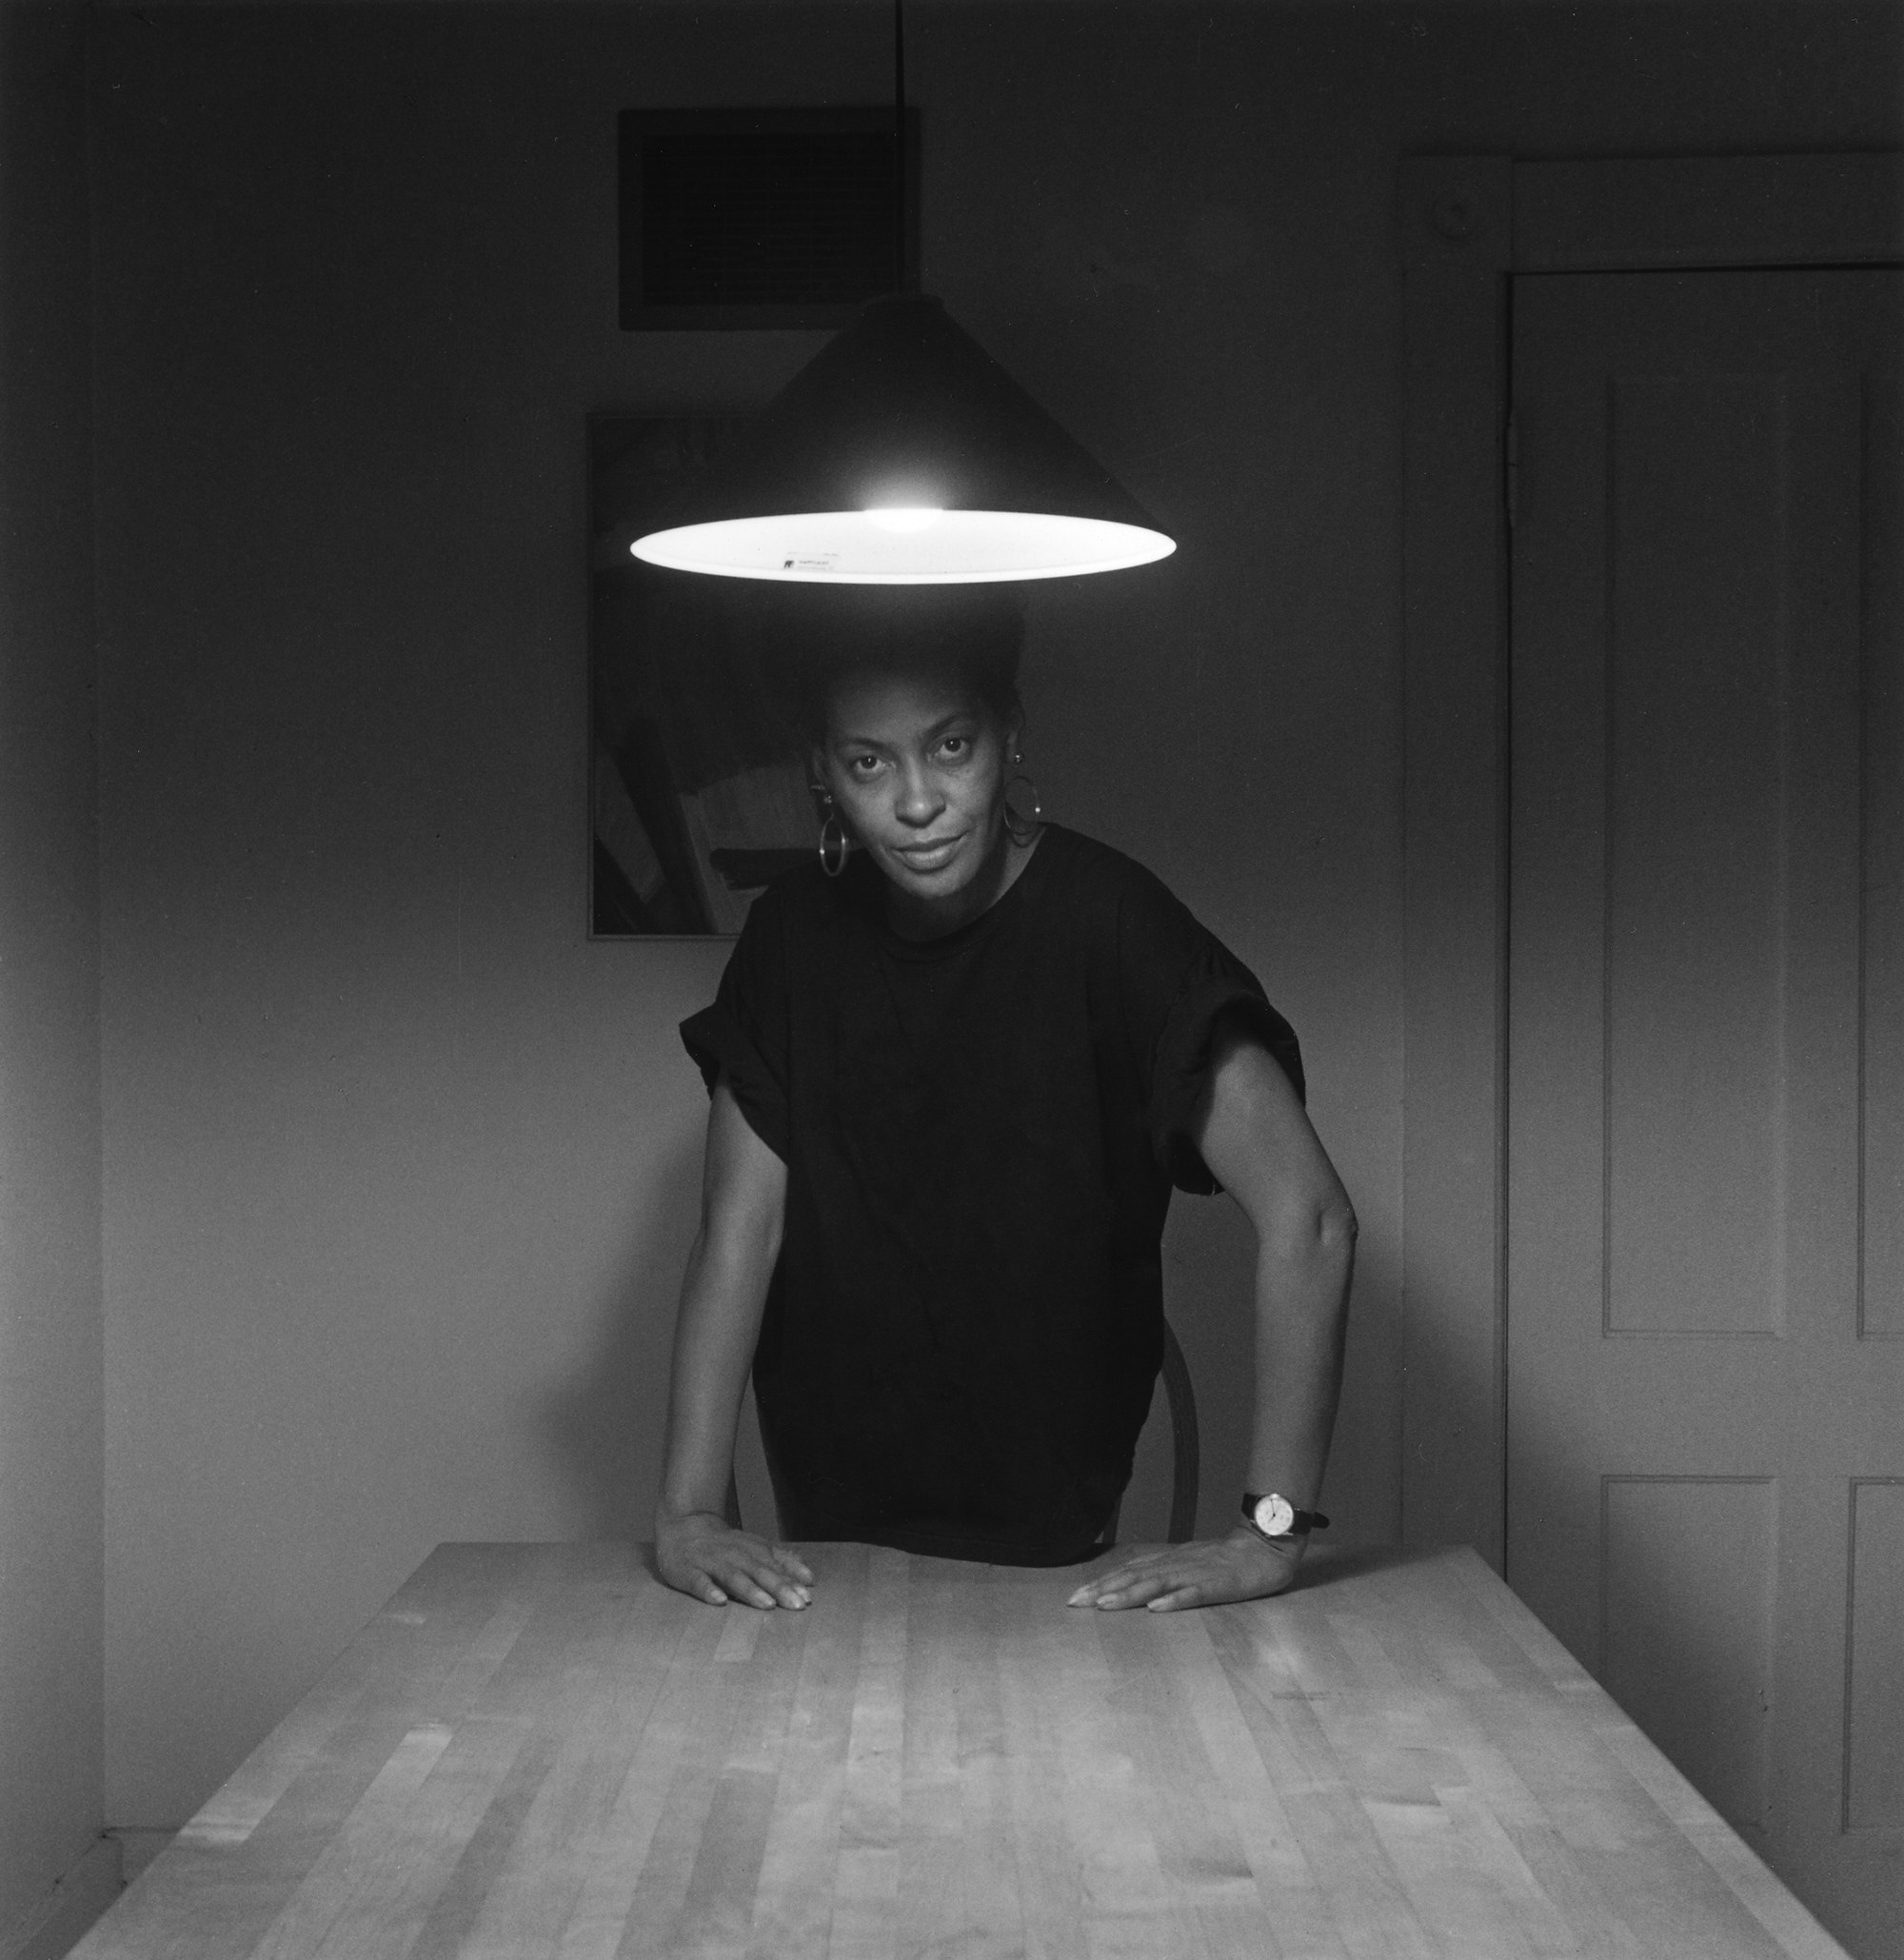 A woman stands under a kitchen light, facing the camera directly